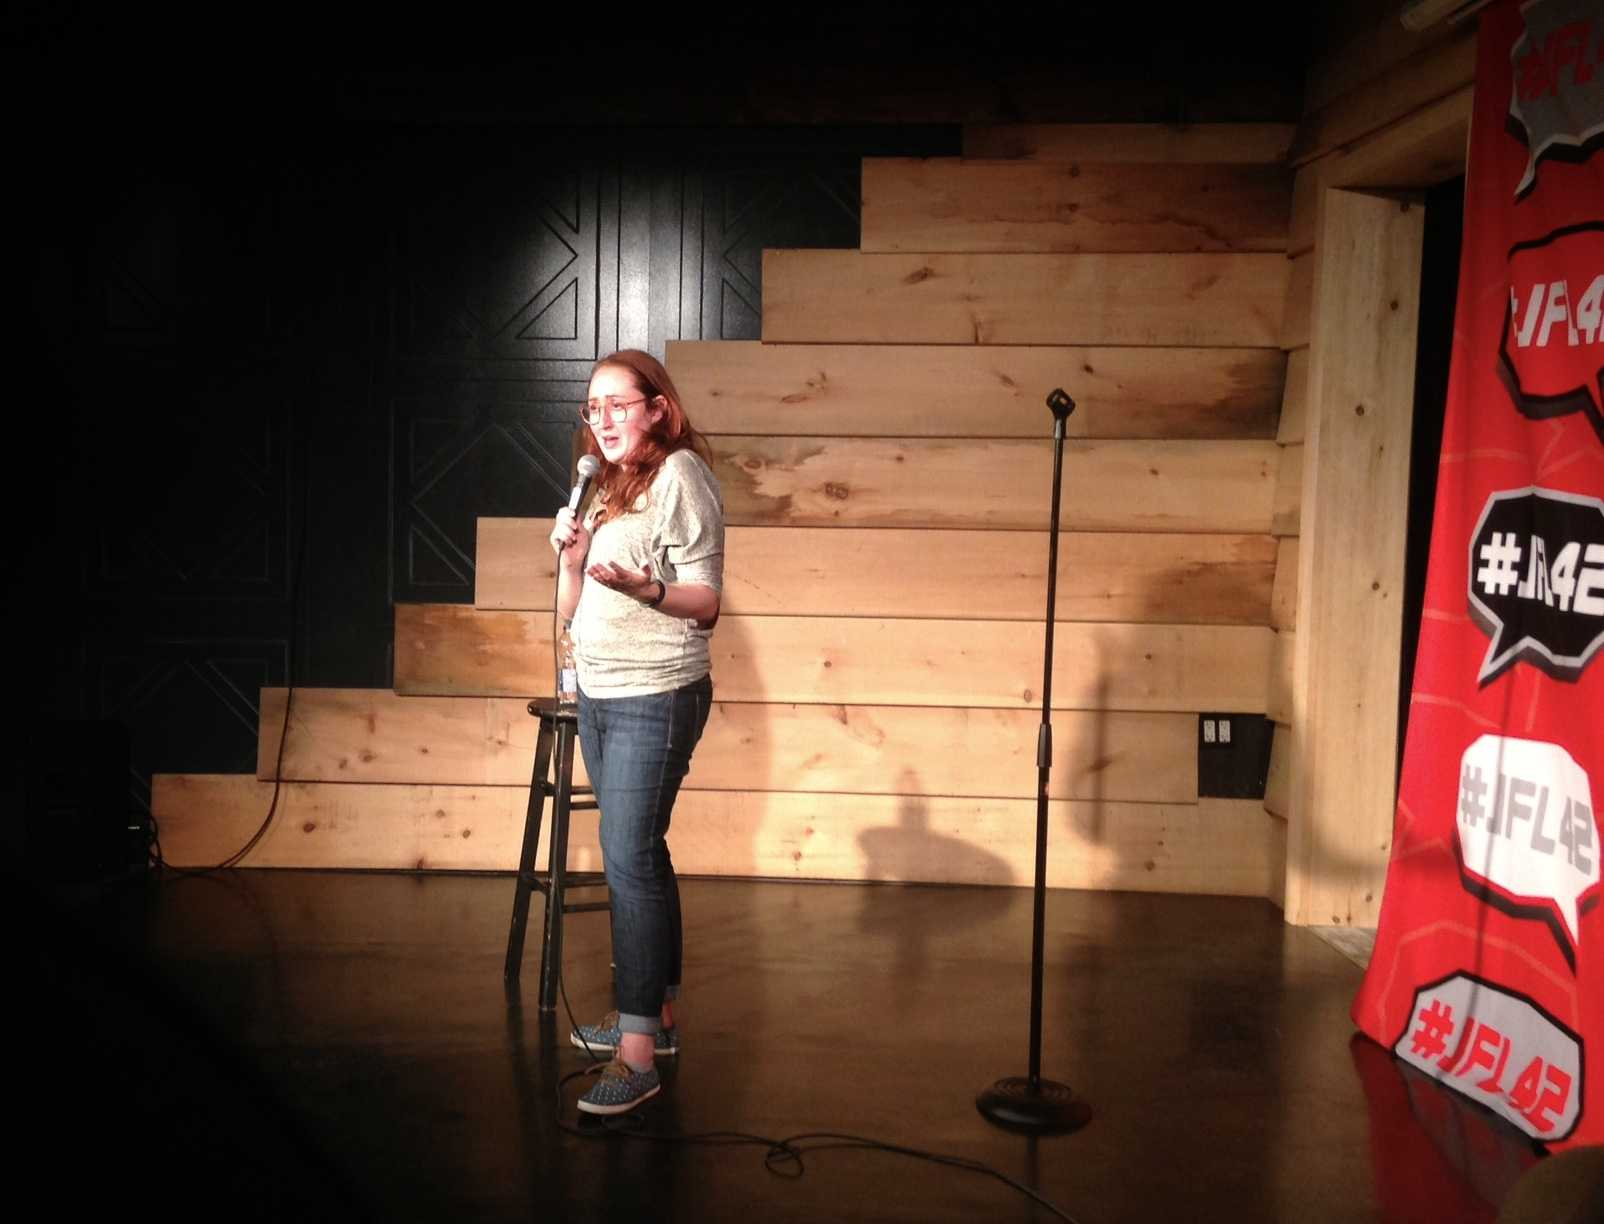 JFL42 Diaries: Emily Heller, Sara Hennessey & Graham Kay In An L-Shaped Room | JFL42